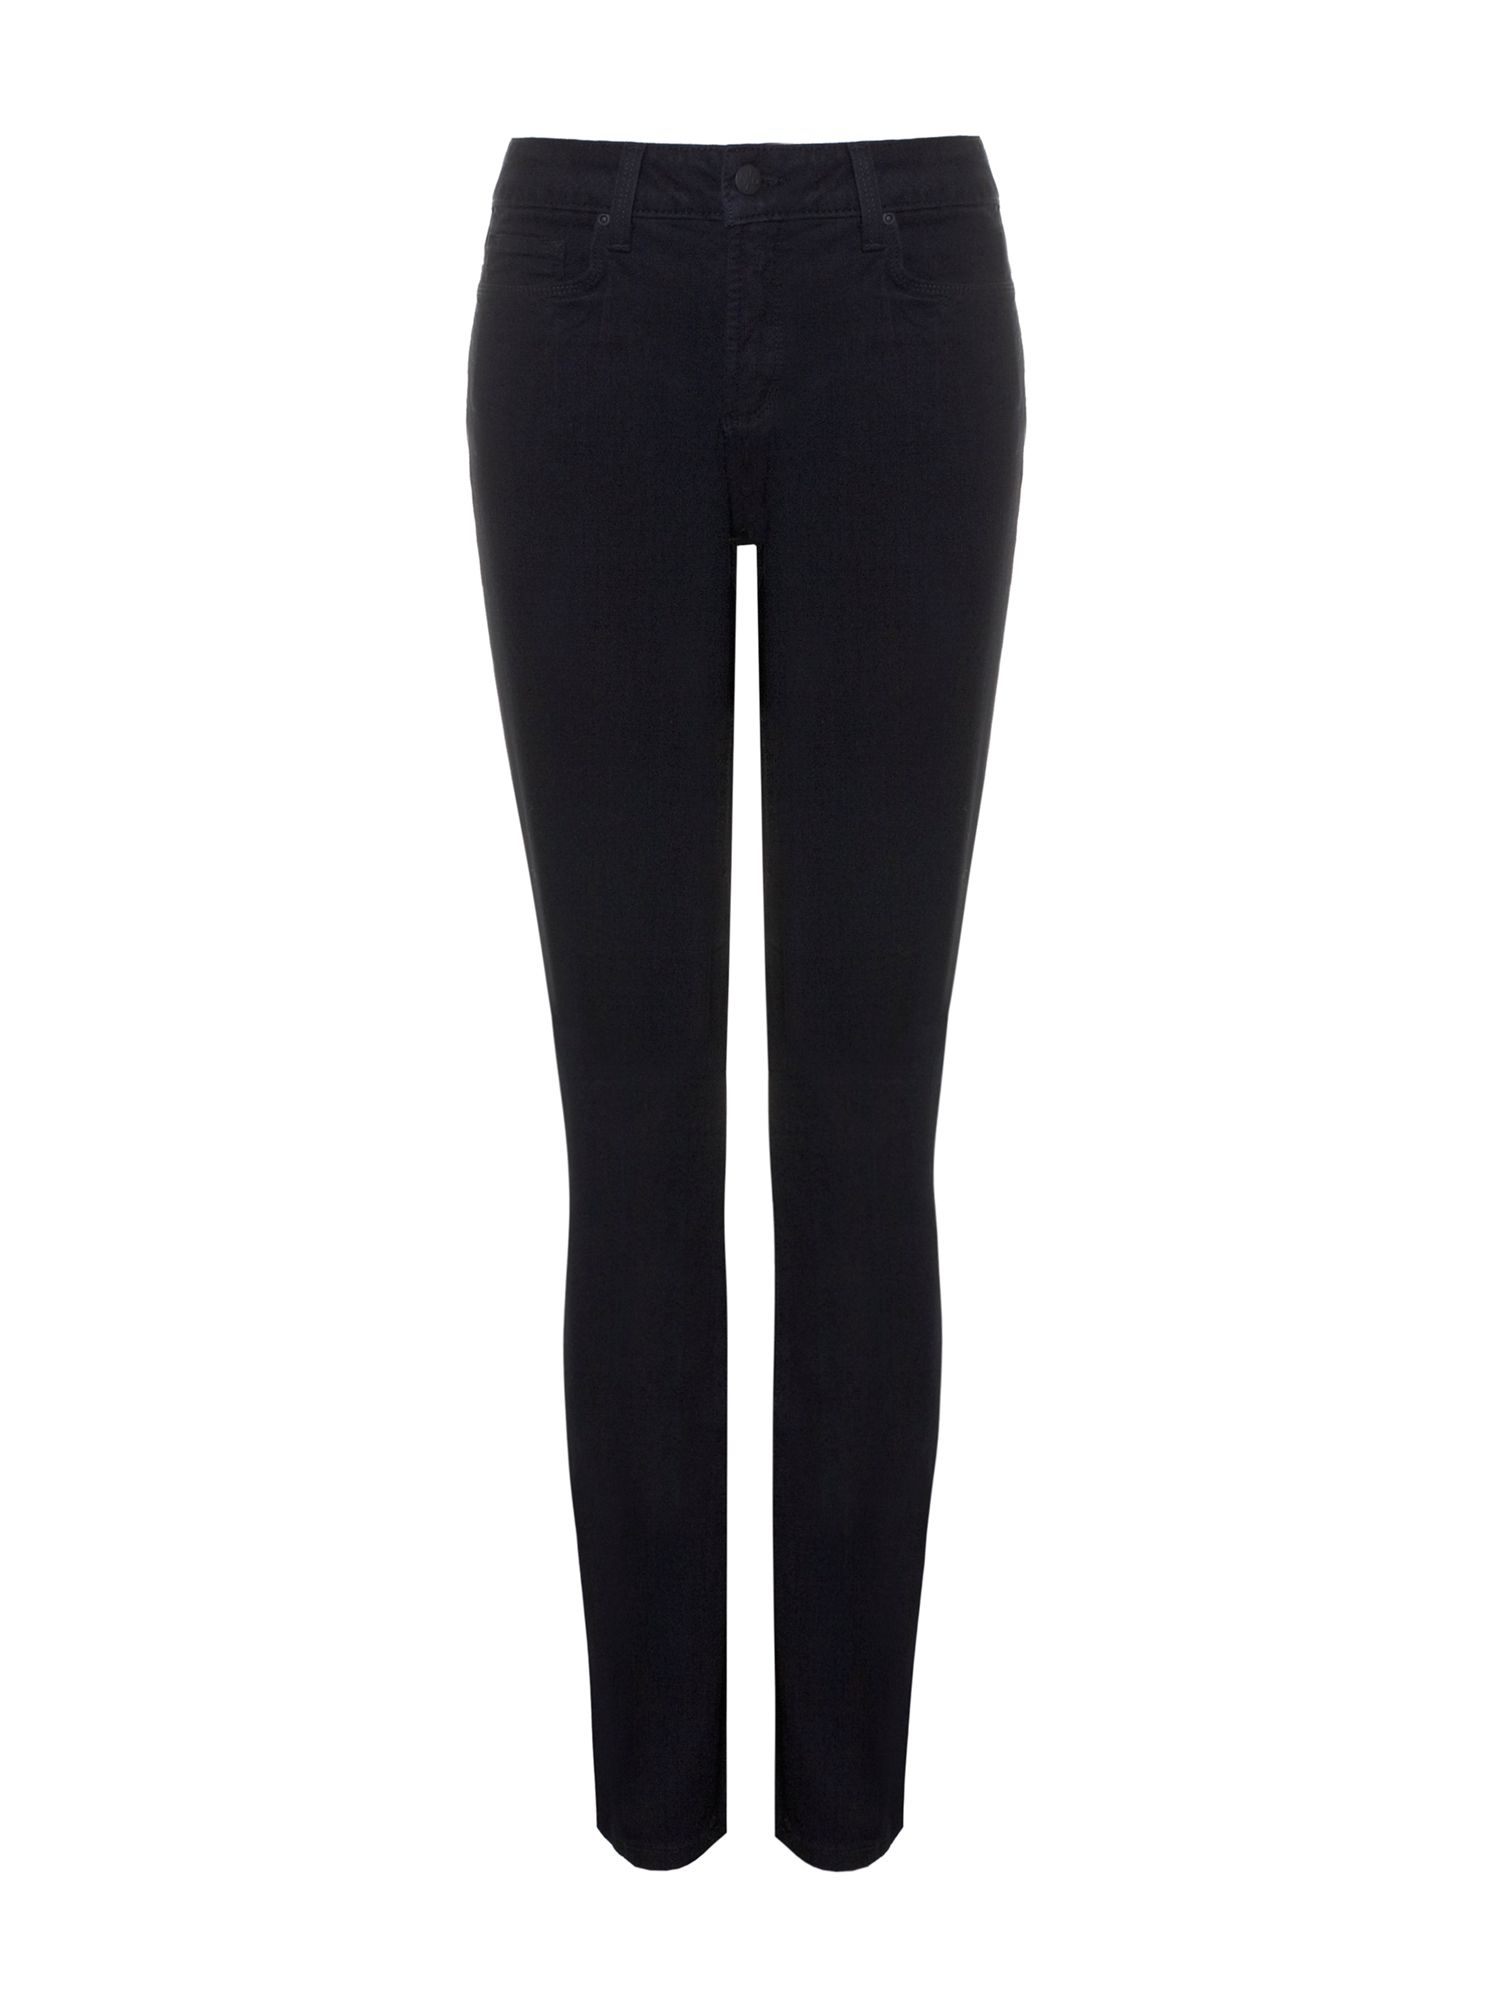 NYDJ Skinny In Black Coloured Denim Petite Black